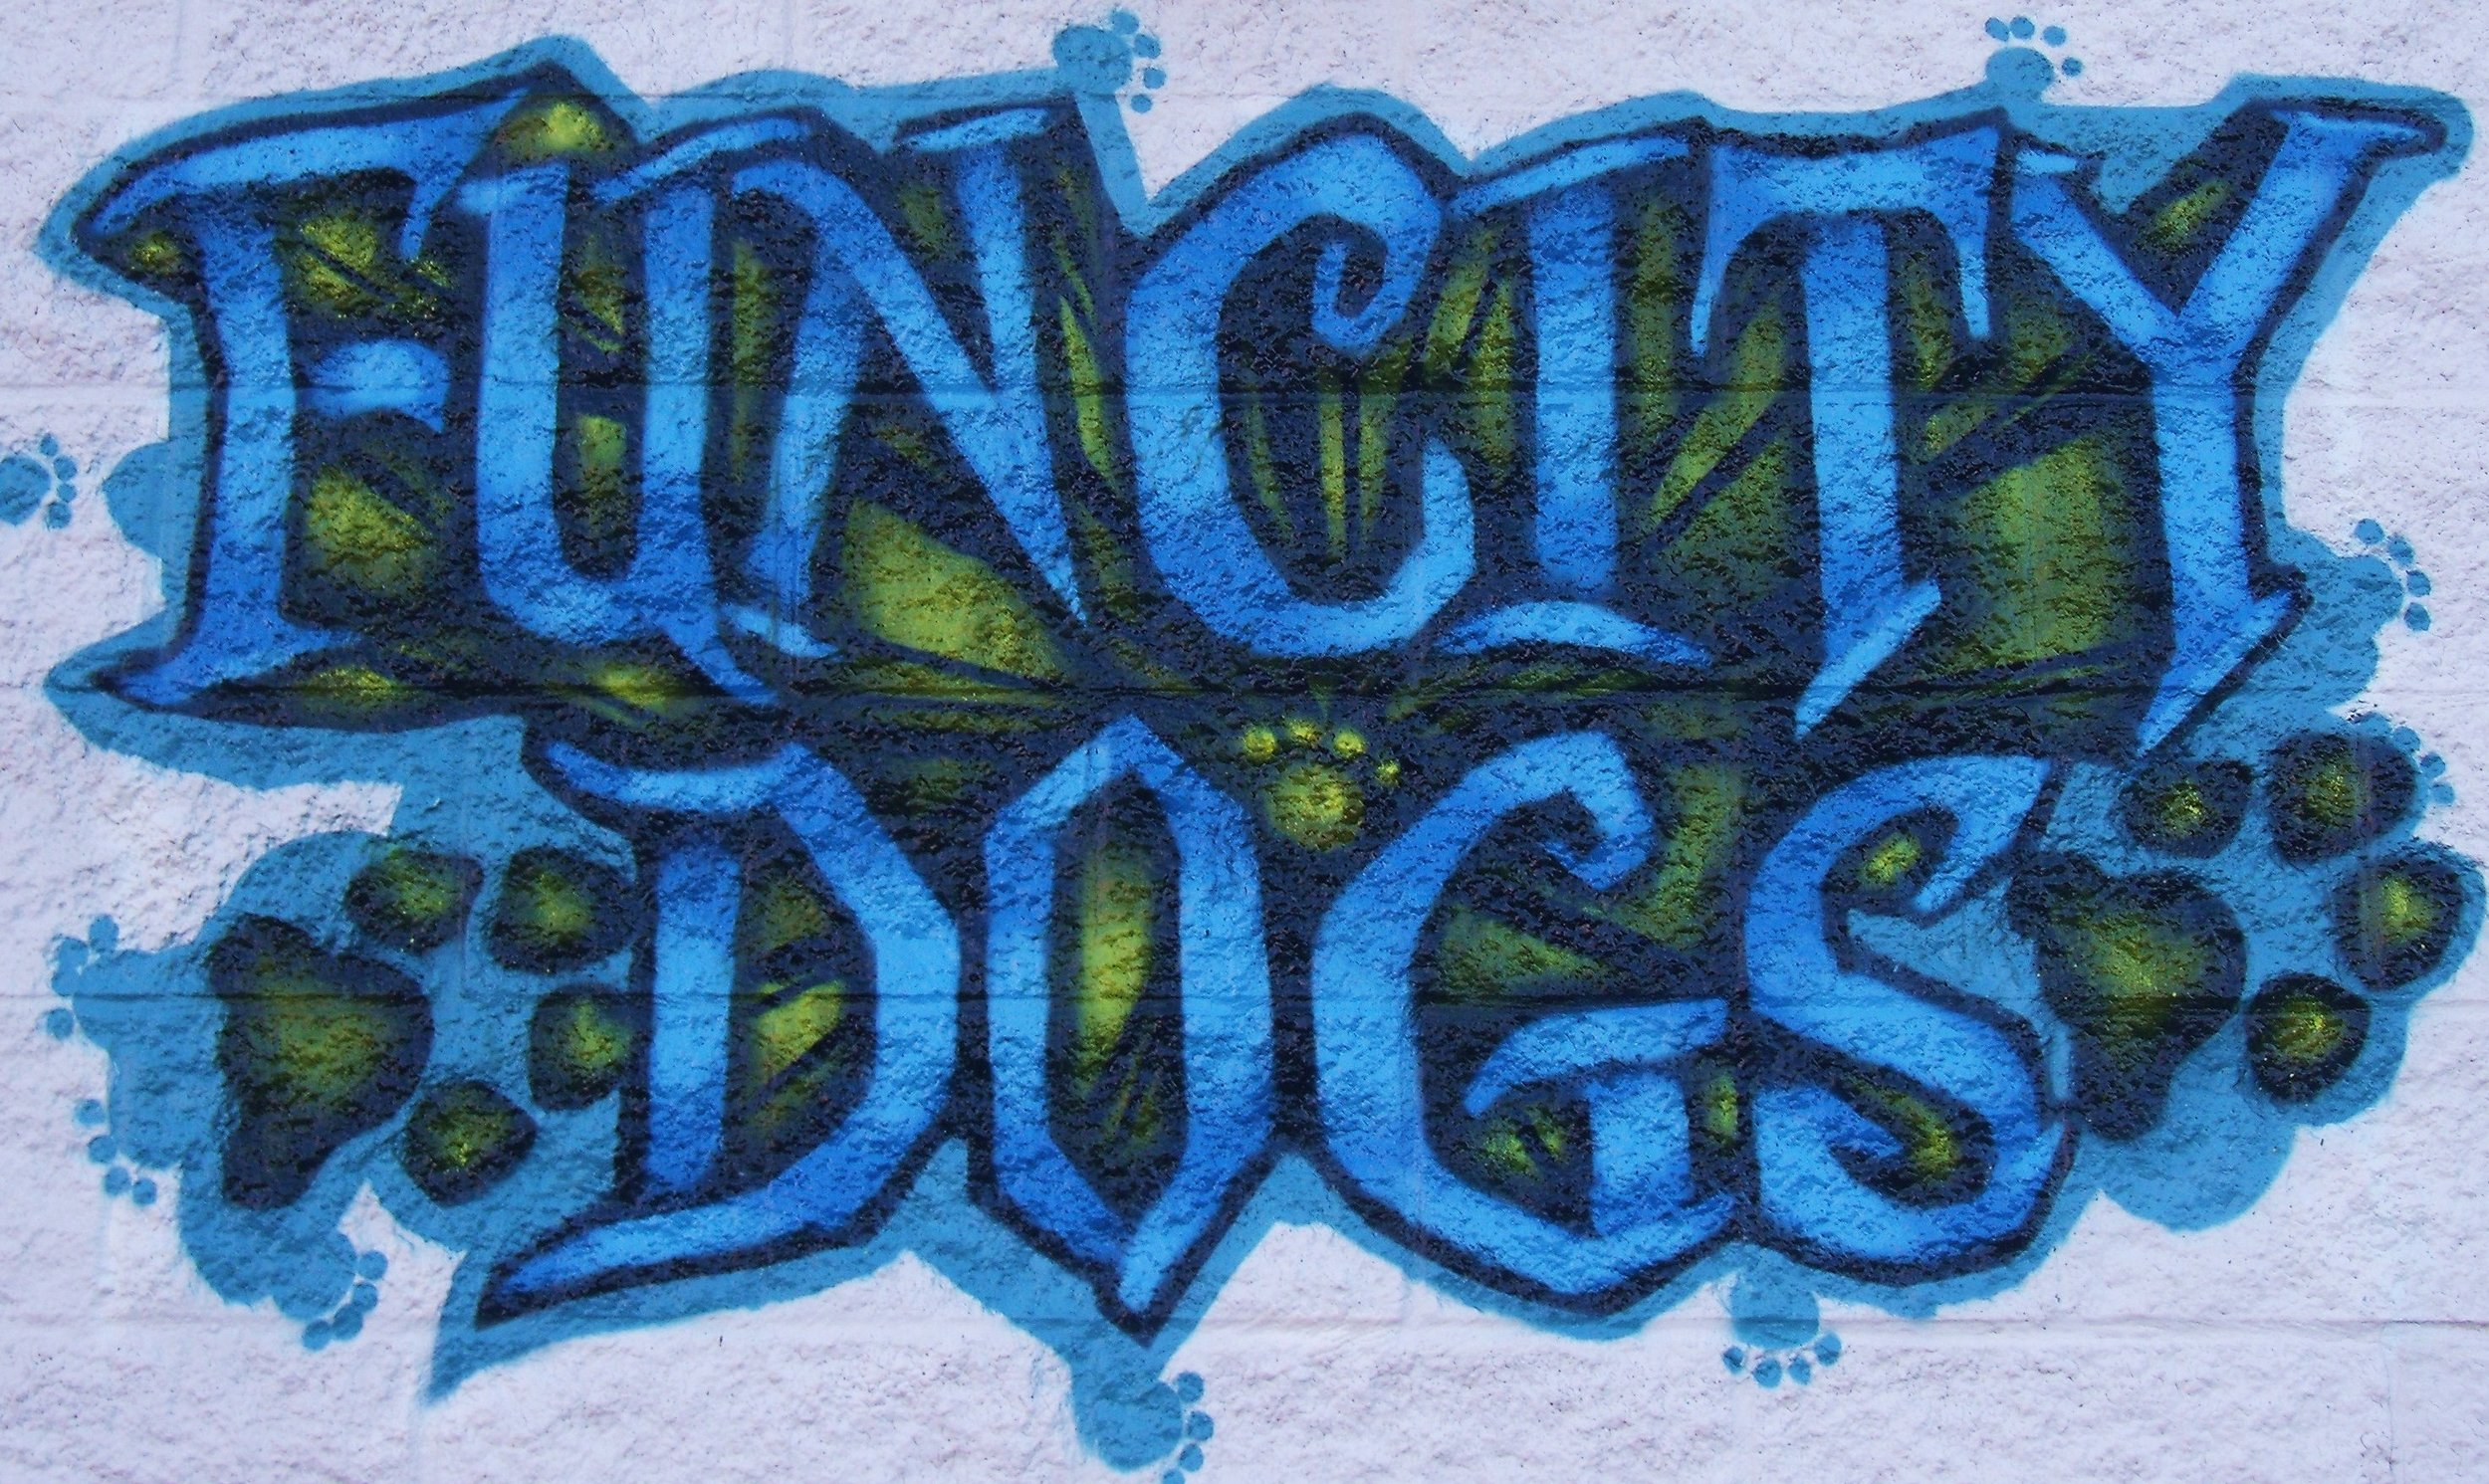 2010_Fun City Dogs Sign.JPG